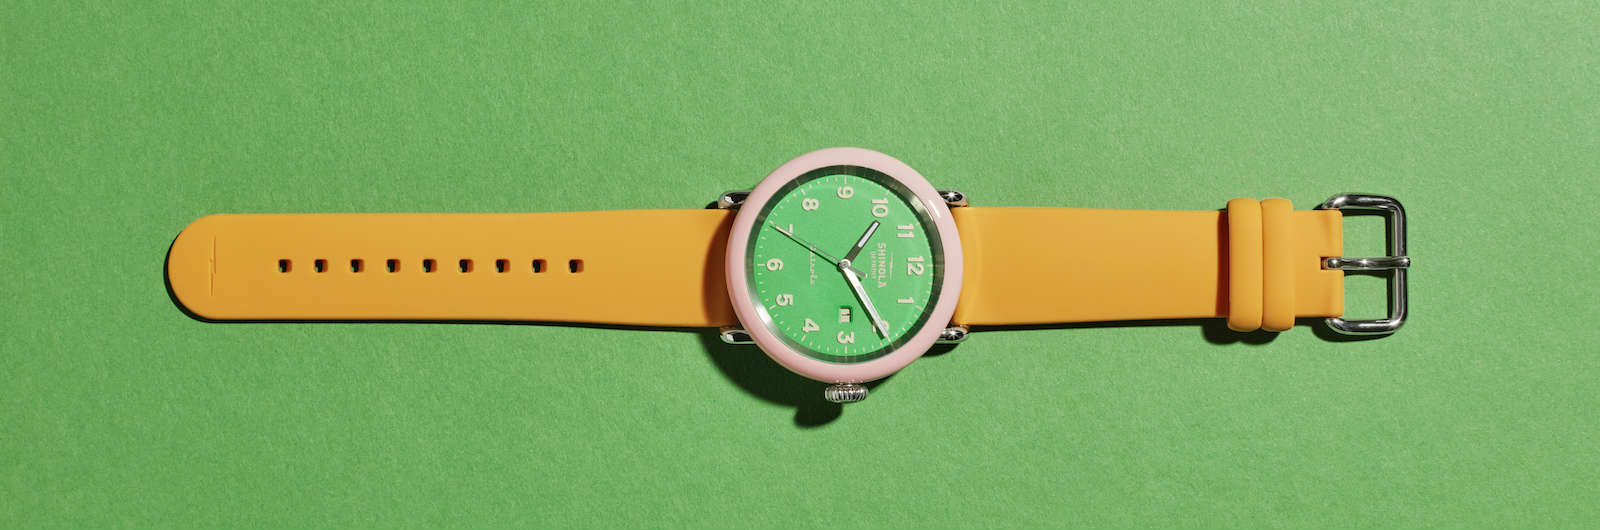 Seven Colorful, Limited-Edition Watches From Your Pals in Detroit